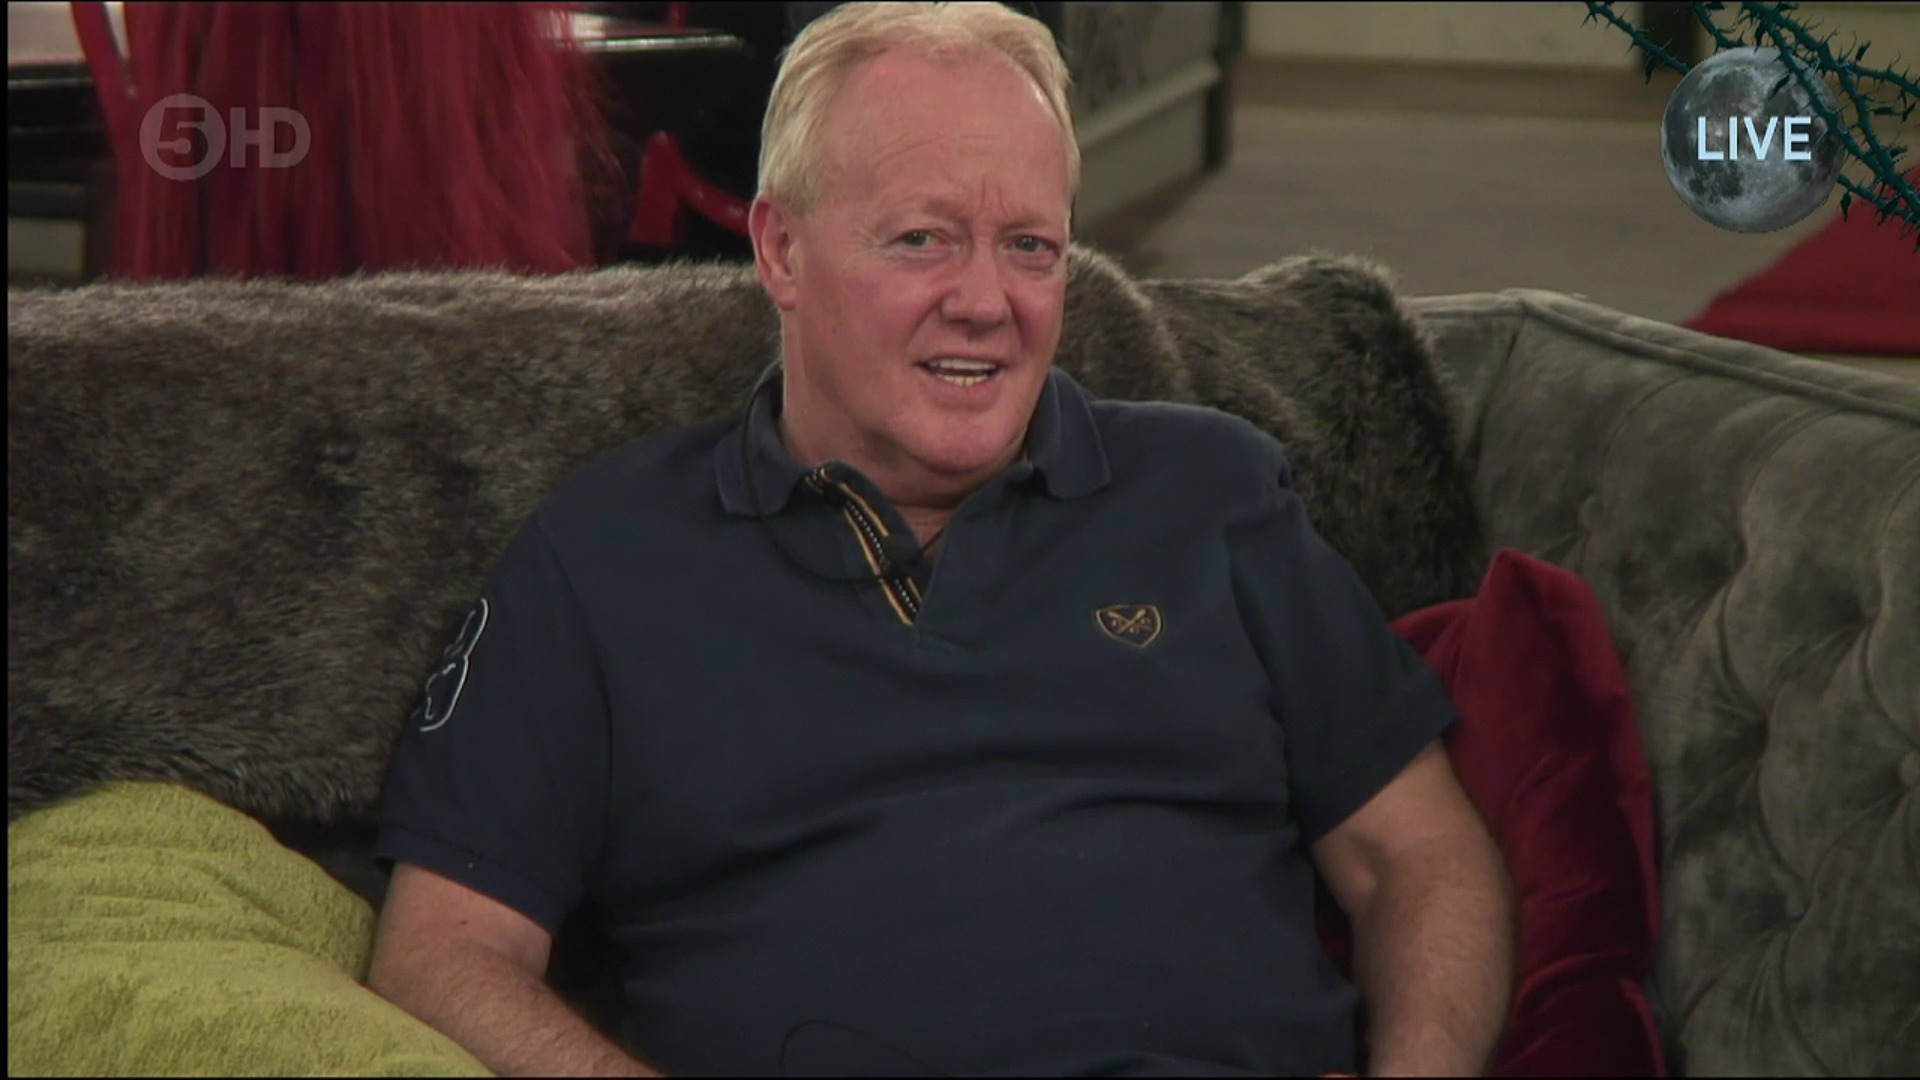 Will Keith Chegwin win Celebrity Big Brother 2015?